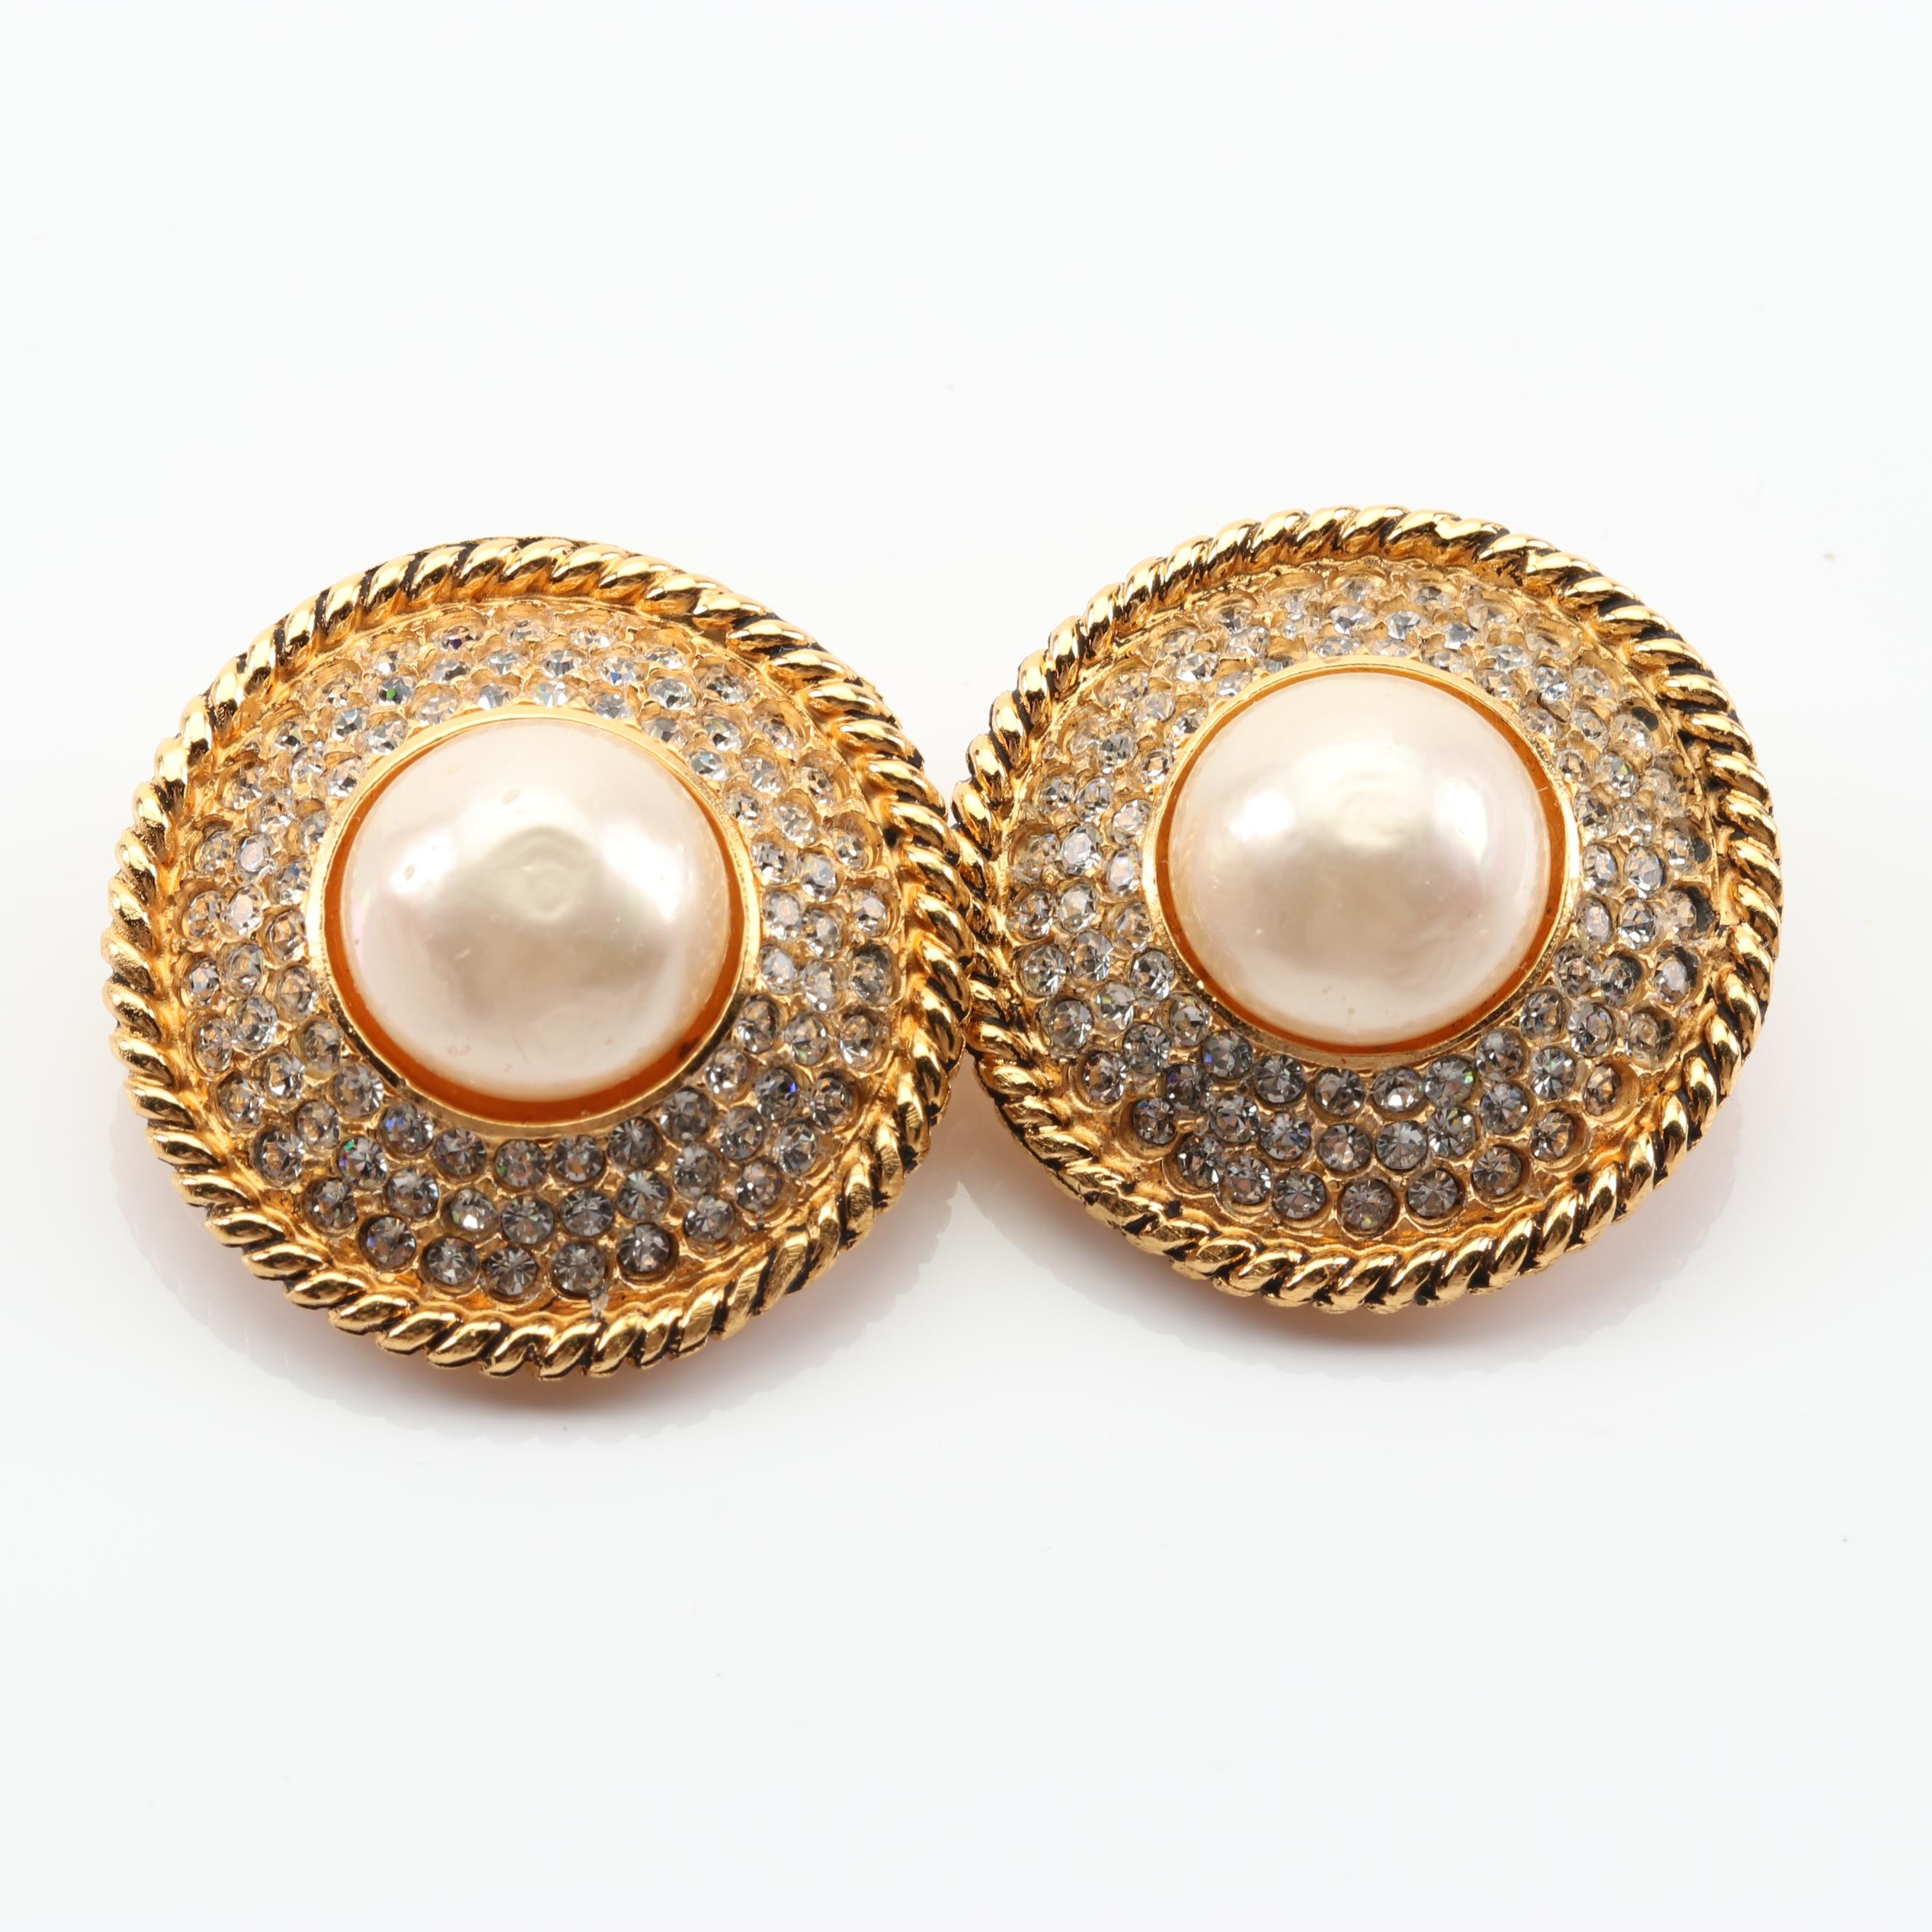 Vintage Chanel Imitation Pearl and Crystal Clip-On Earrings